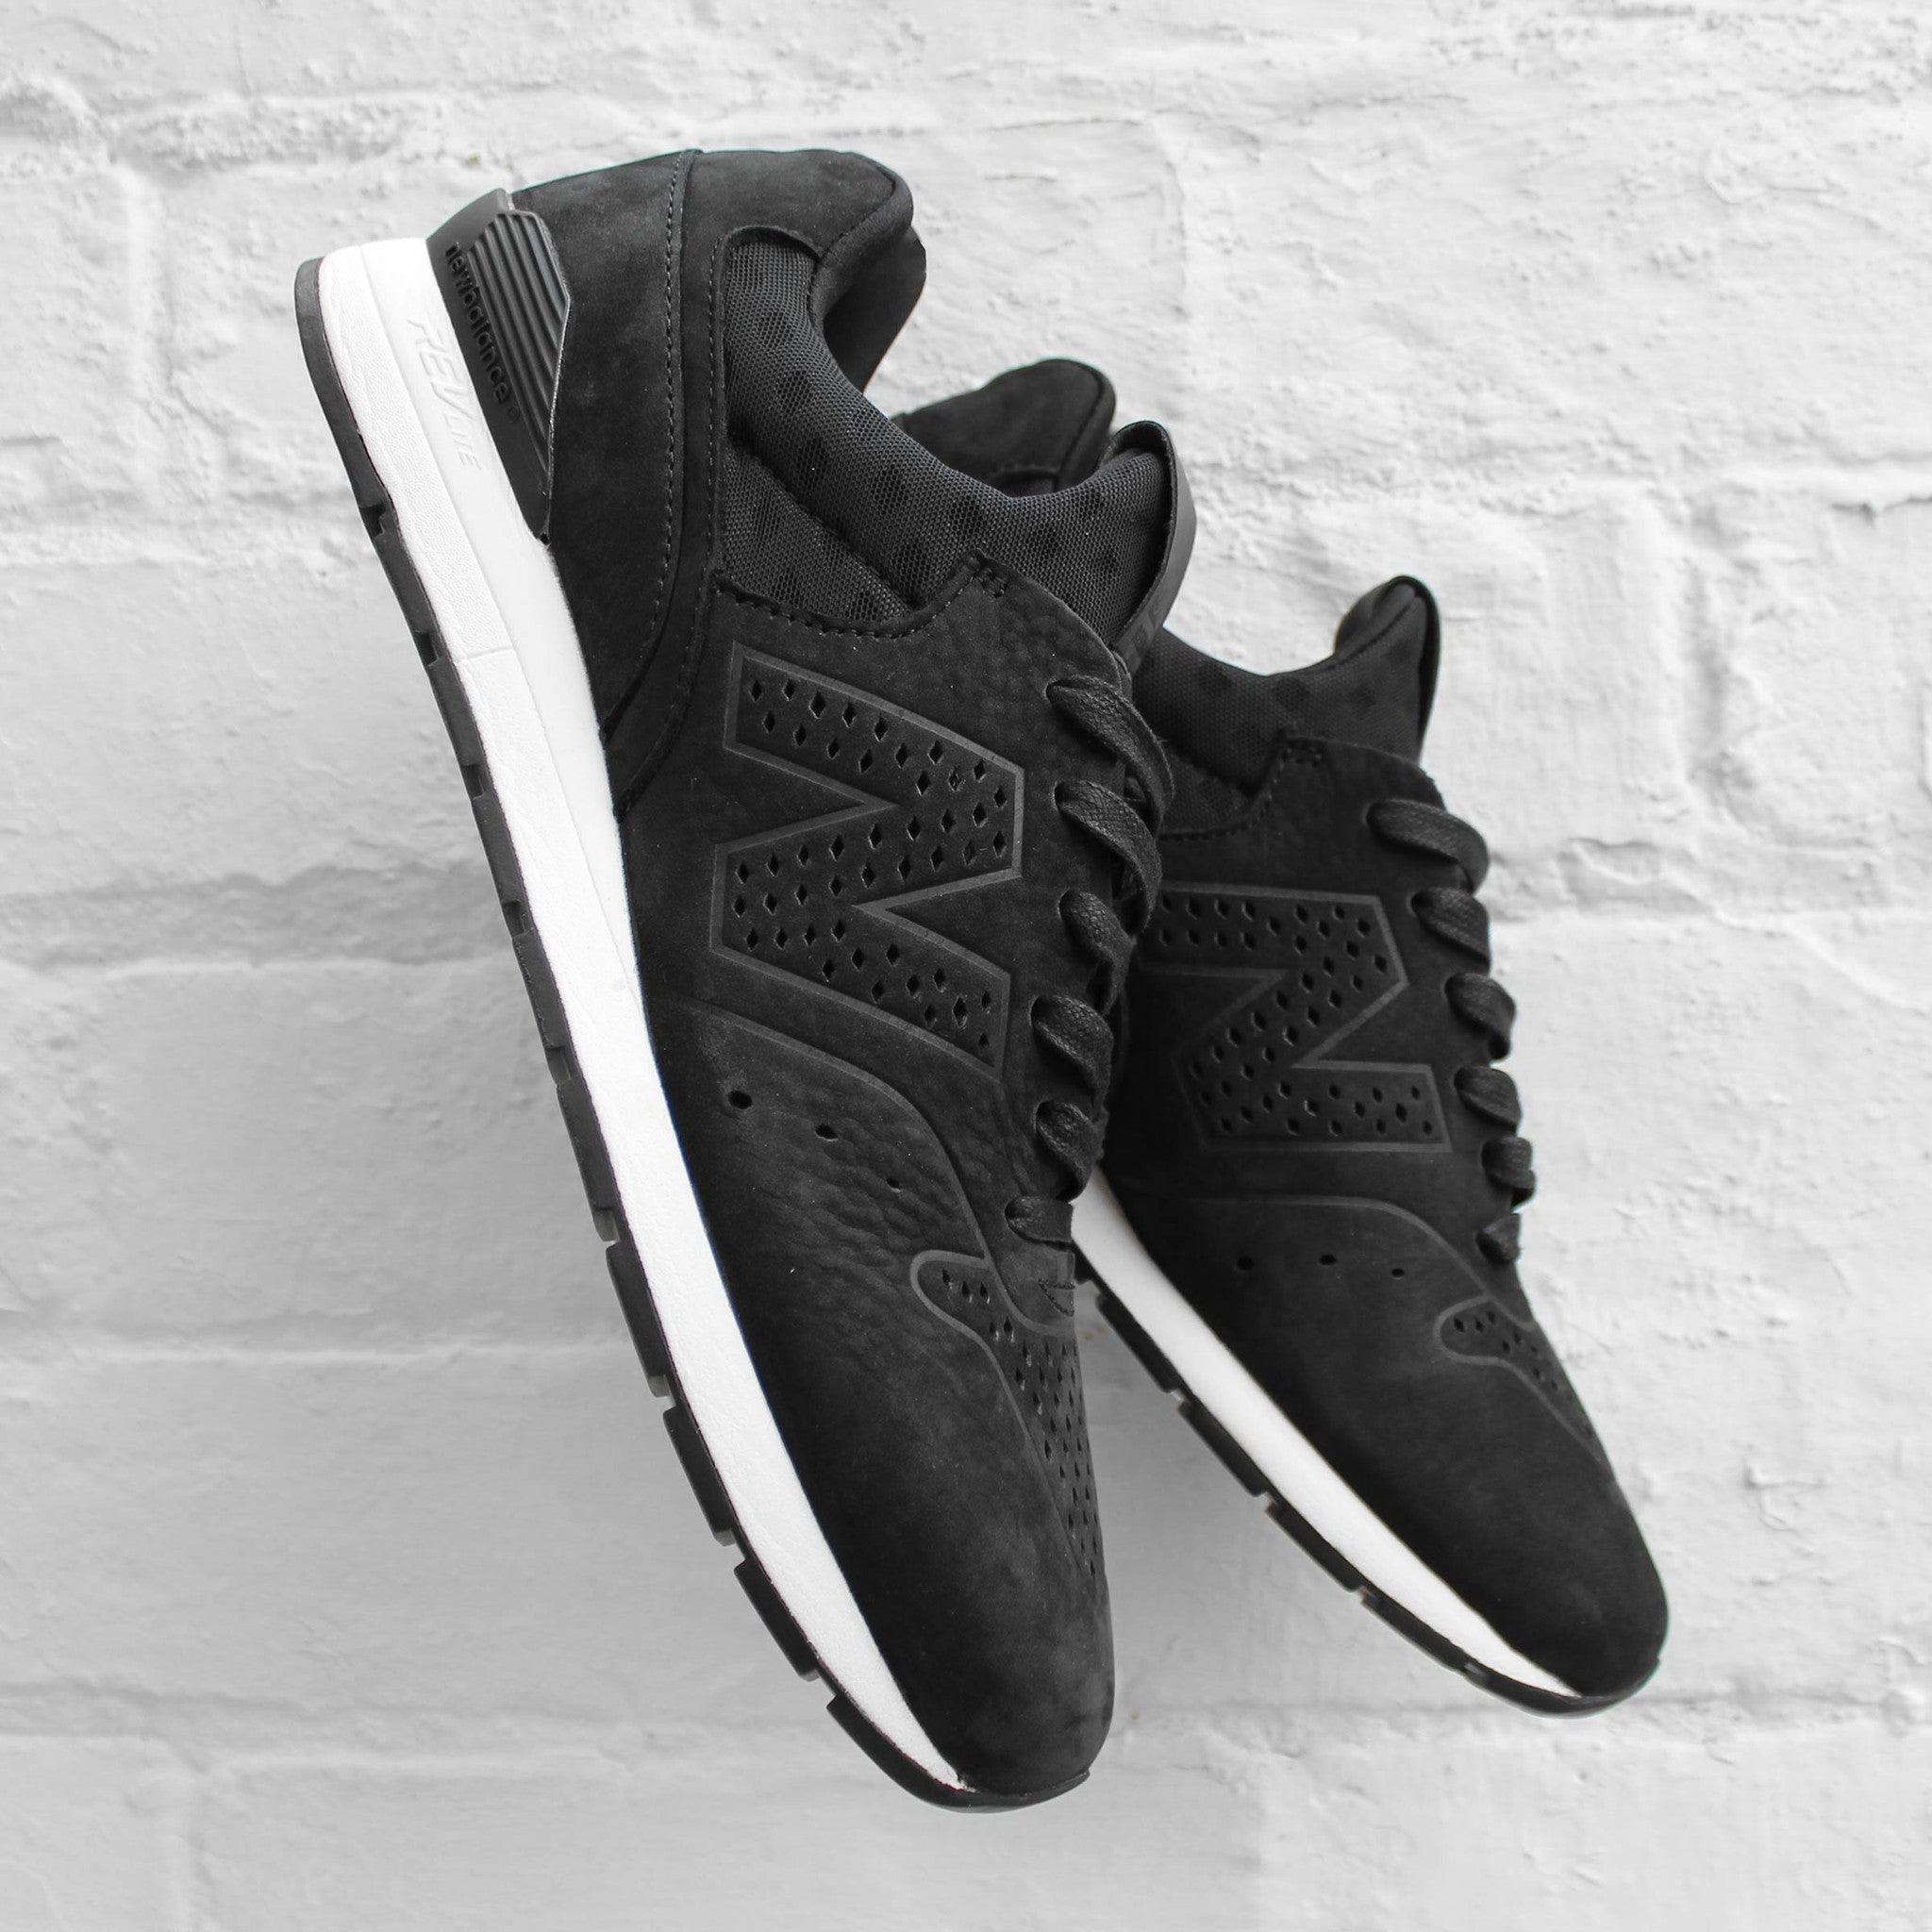 New Balance 996 Re-Engineered MRL996DK Black/Black